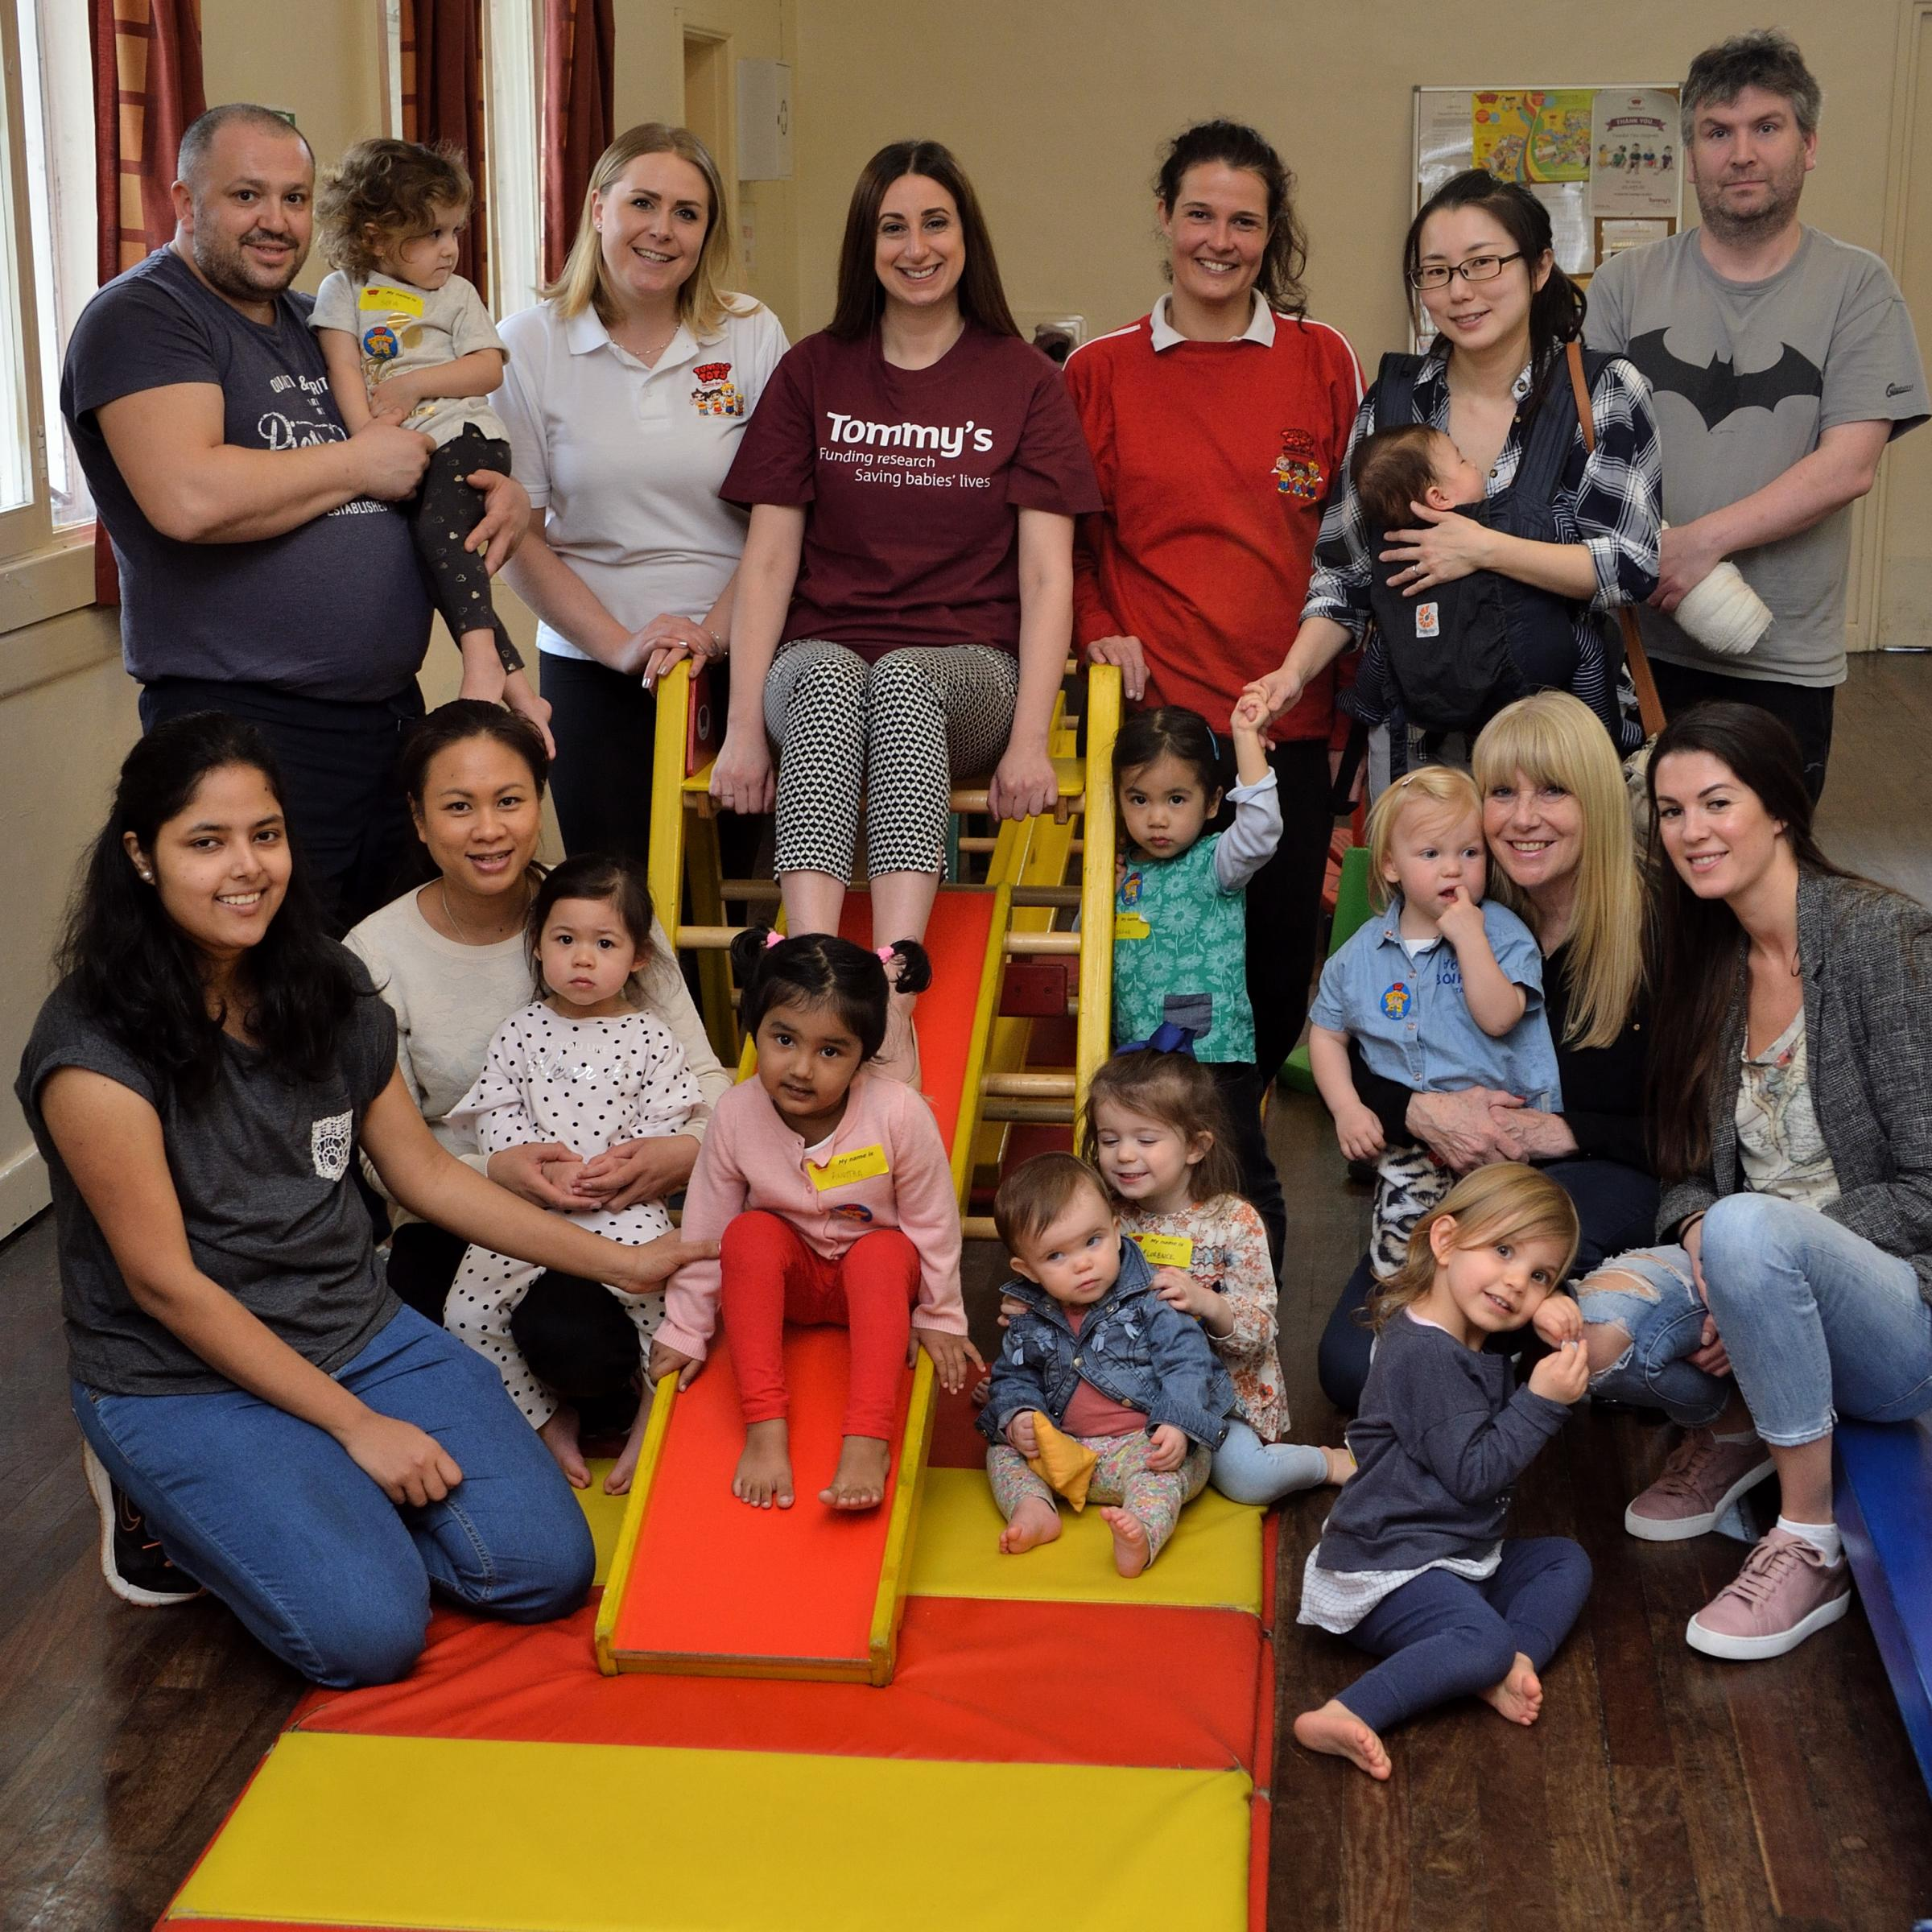 Tumble Tots have raised more than £60,000 for TommyÕs the baby charity. Tara Hamdi (Head of Community Events, TommyÕs) visits a play session at Roding Valley Hall. Essex. (17/4/2018) EL91976_03